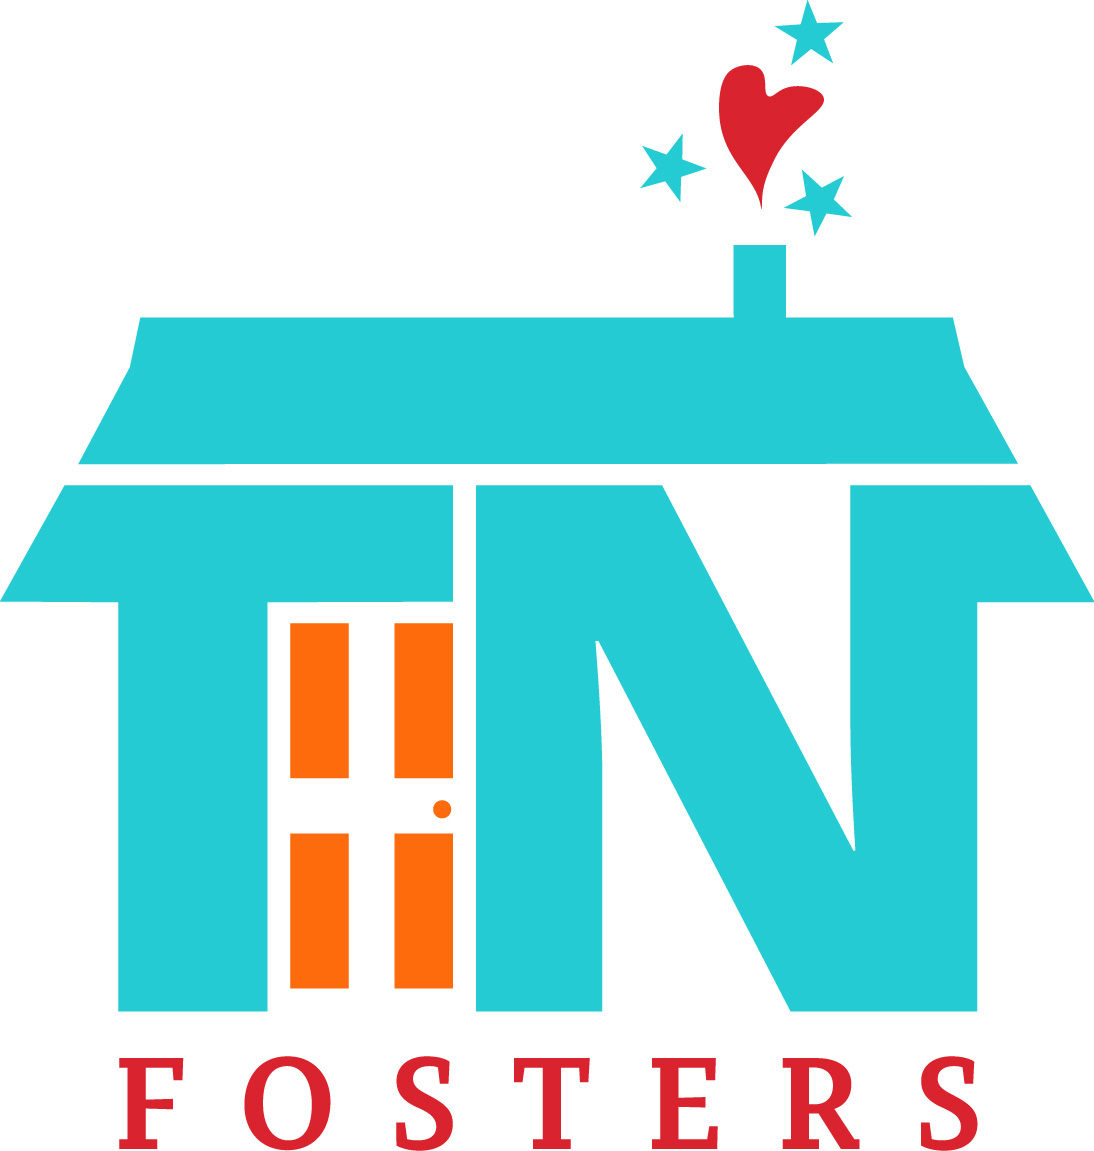 On average, there are about 350 children and teens who are in the full guardianship of the state of Tennessee and in need of forever families through adoption.  To learn more about adopting from foster care in Tennessee, please visit TNFosters.gov or any of these four photo and profile listing sites.  If you have any questions, please submit an inquiry form, which can be found on the photo listing sites, or call the Department of Children's Services, 615-741-9858.   AdoptUSKids    https://www.adoptuskids.org/states/tn/search.aspx    Heart Gallery of Tennessee    http://heartgalleryoftn.com/    Tennessee Kids Belong    http://americaskidsbelong.org/tn/    Parent a Child , a service of  Harmony Family Center's  FOCUS program   http://parentachild.org/